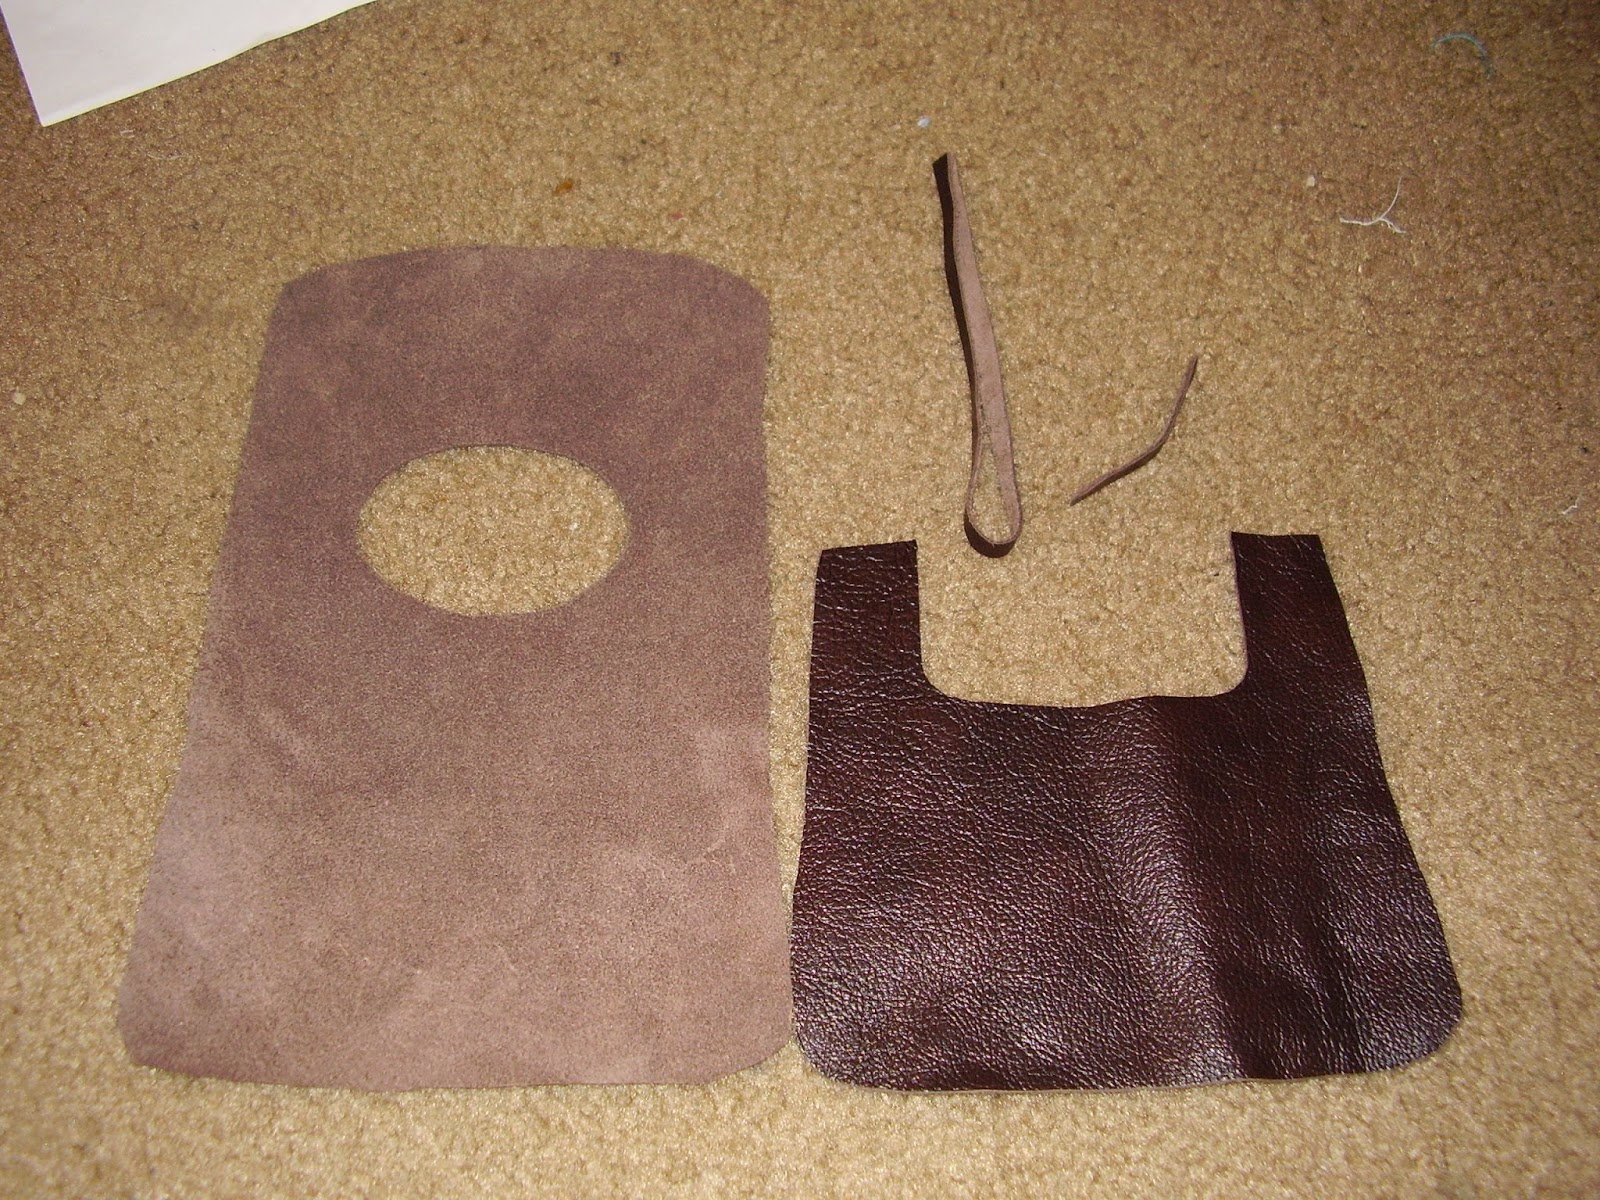 Pieces cut out: bag back/lid, front, and ties.